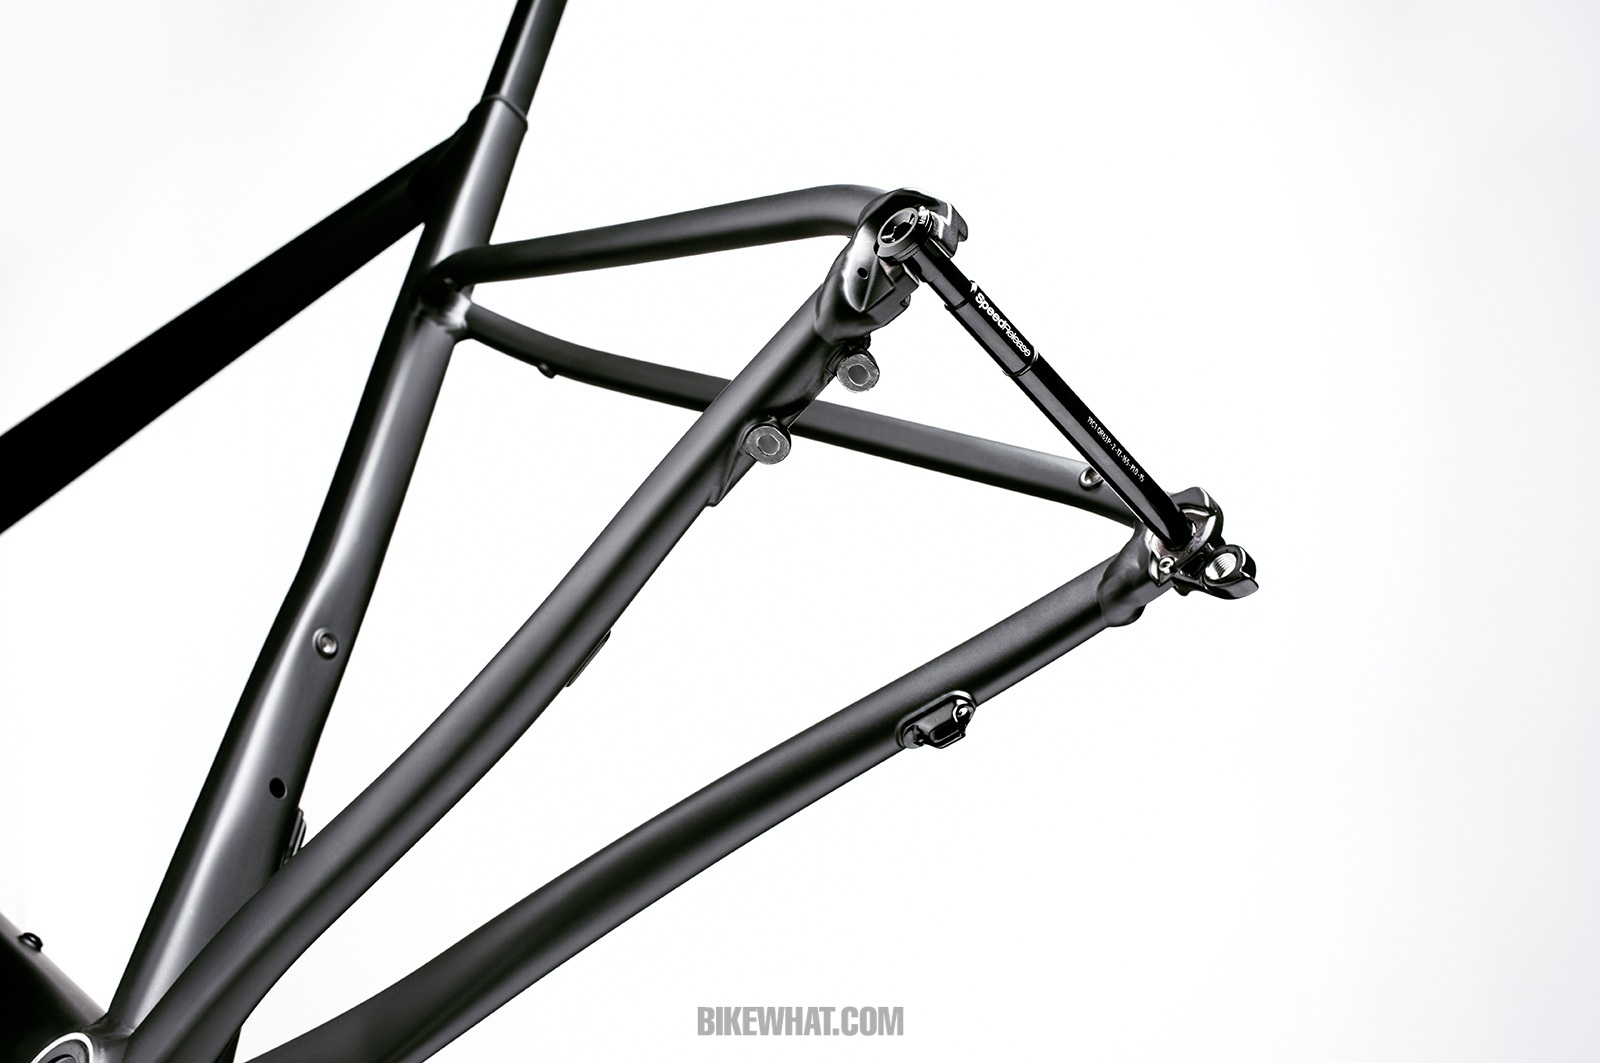 Gear_Cannondale_CAAD13_7.jpg